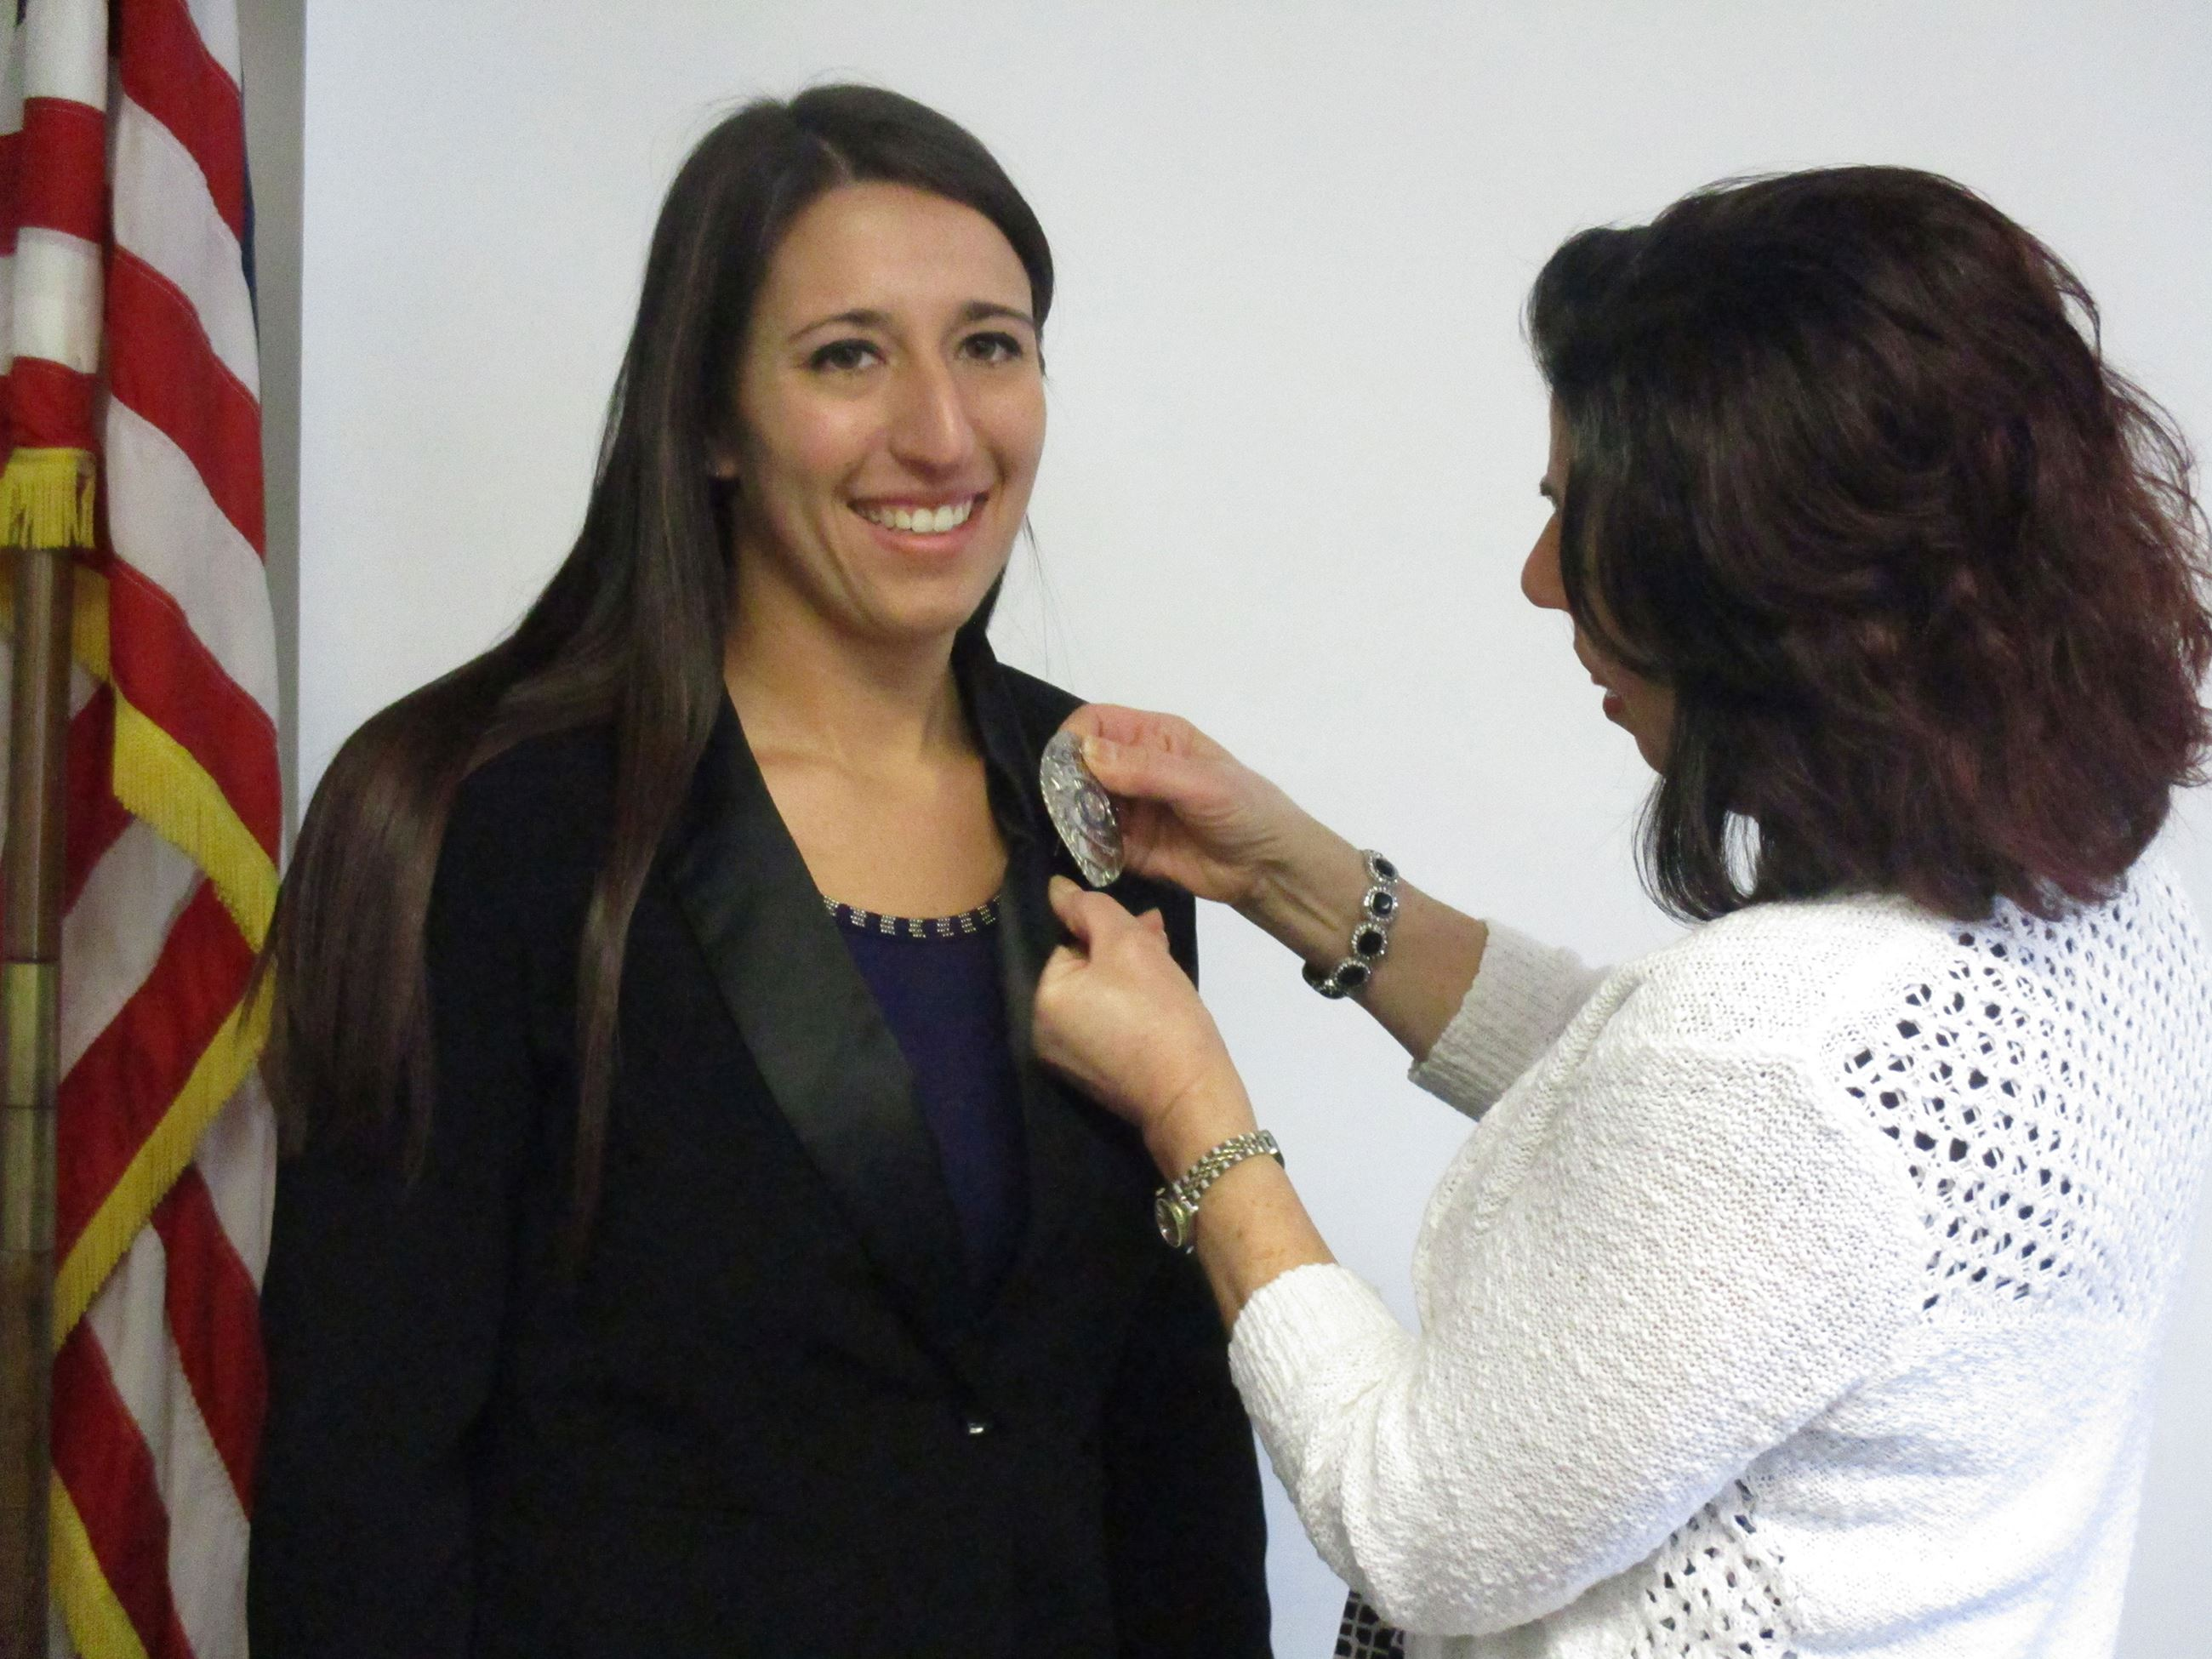 Officer Alysha Pirog badge pinning